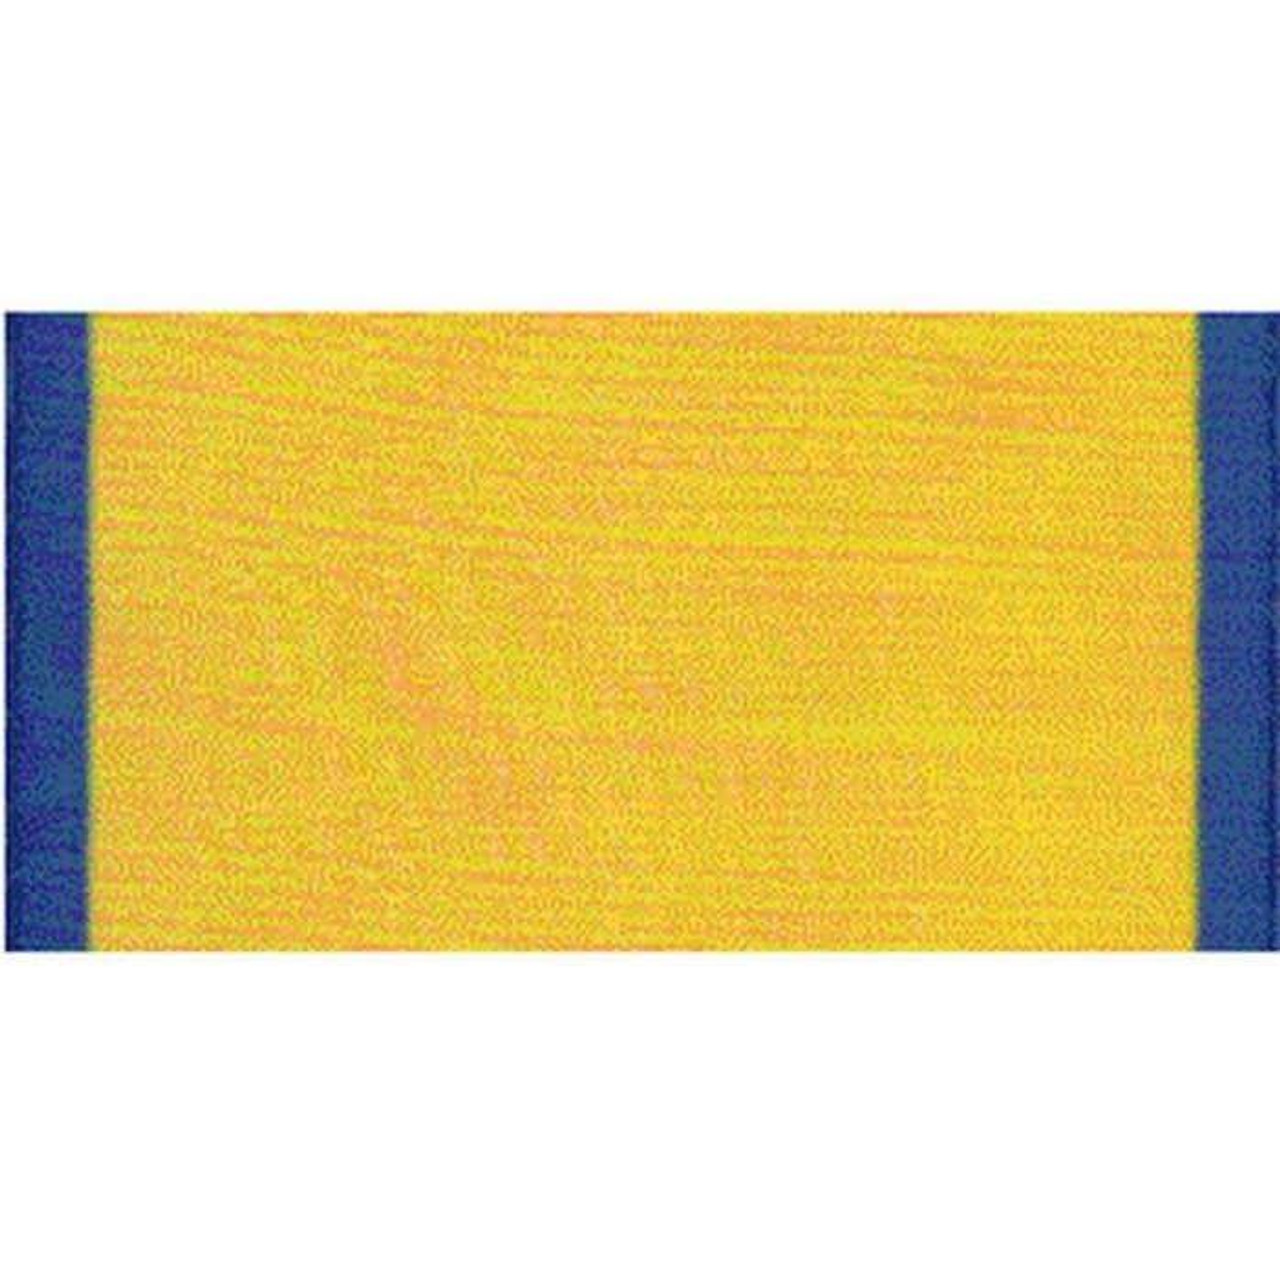 China Relief Expedition Streamer